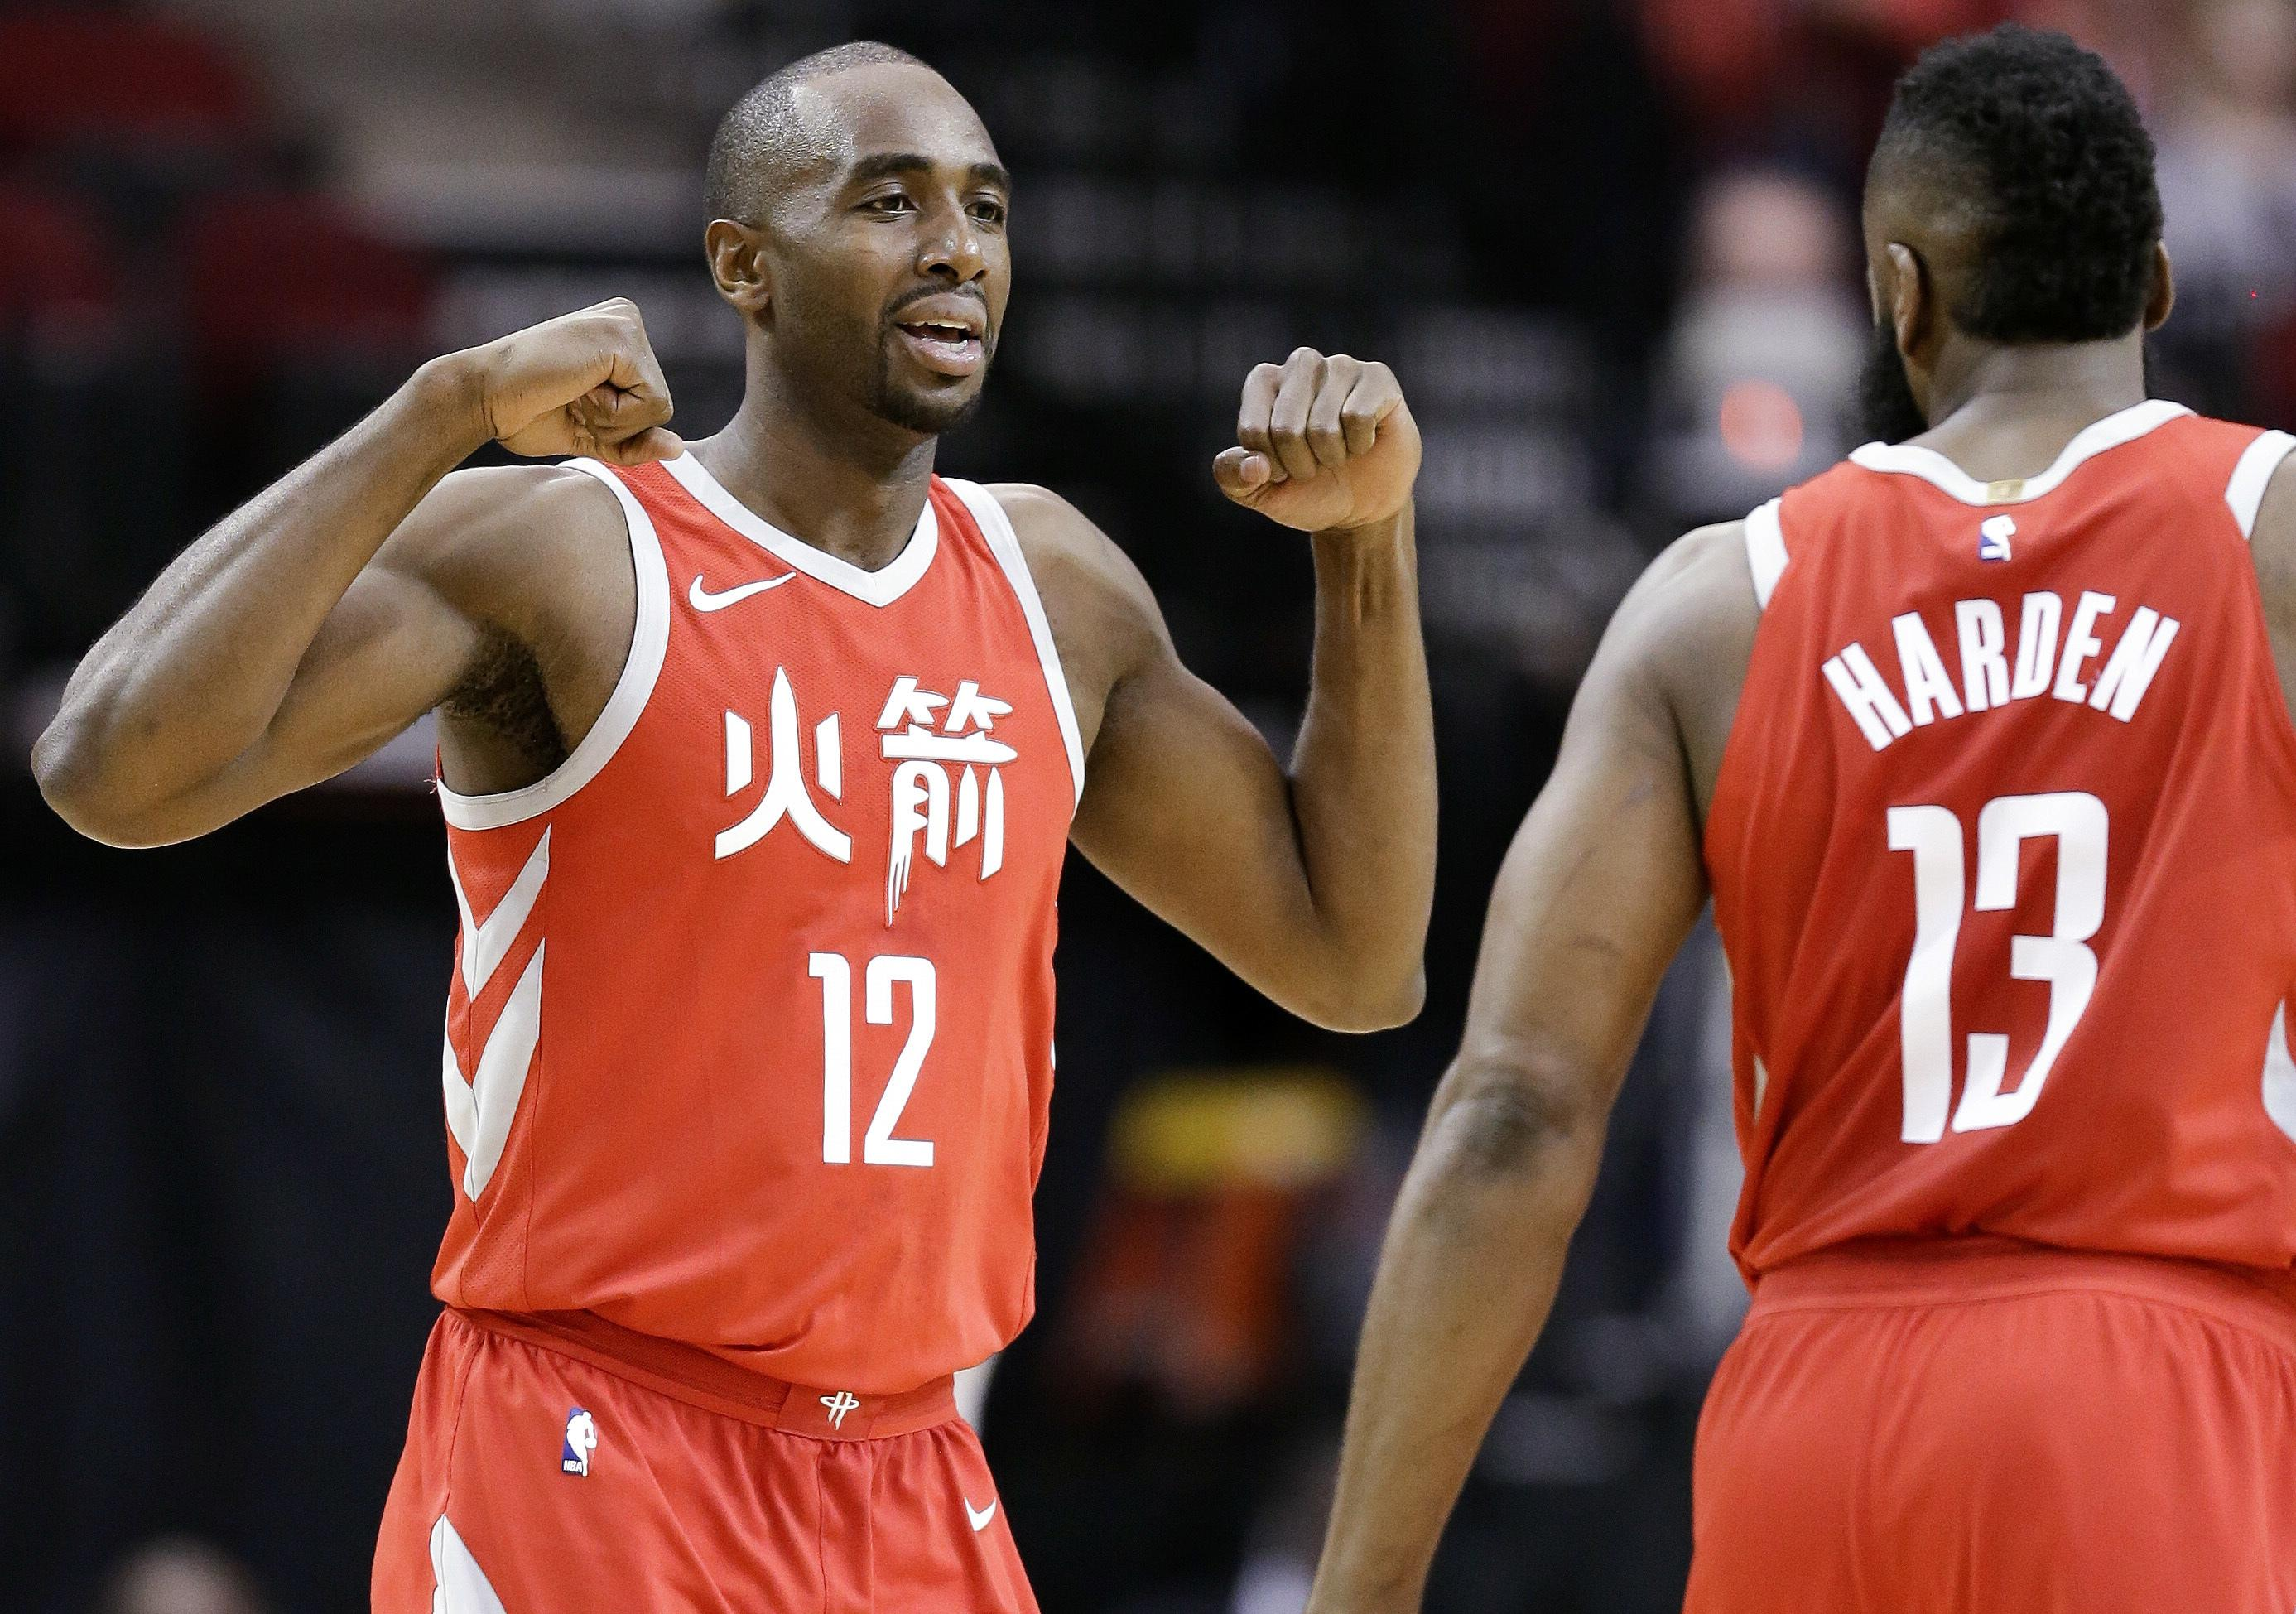 807170243a8 Houston Rockets forward Luc Mbah a Moute (12) celebrates after drawing a  foul